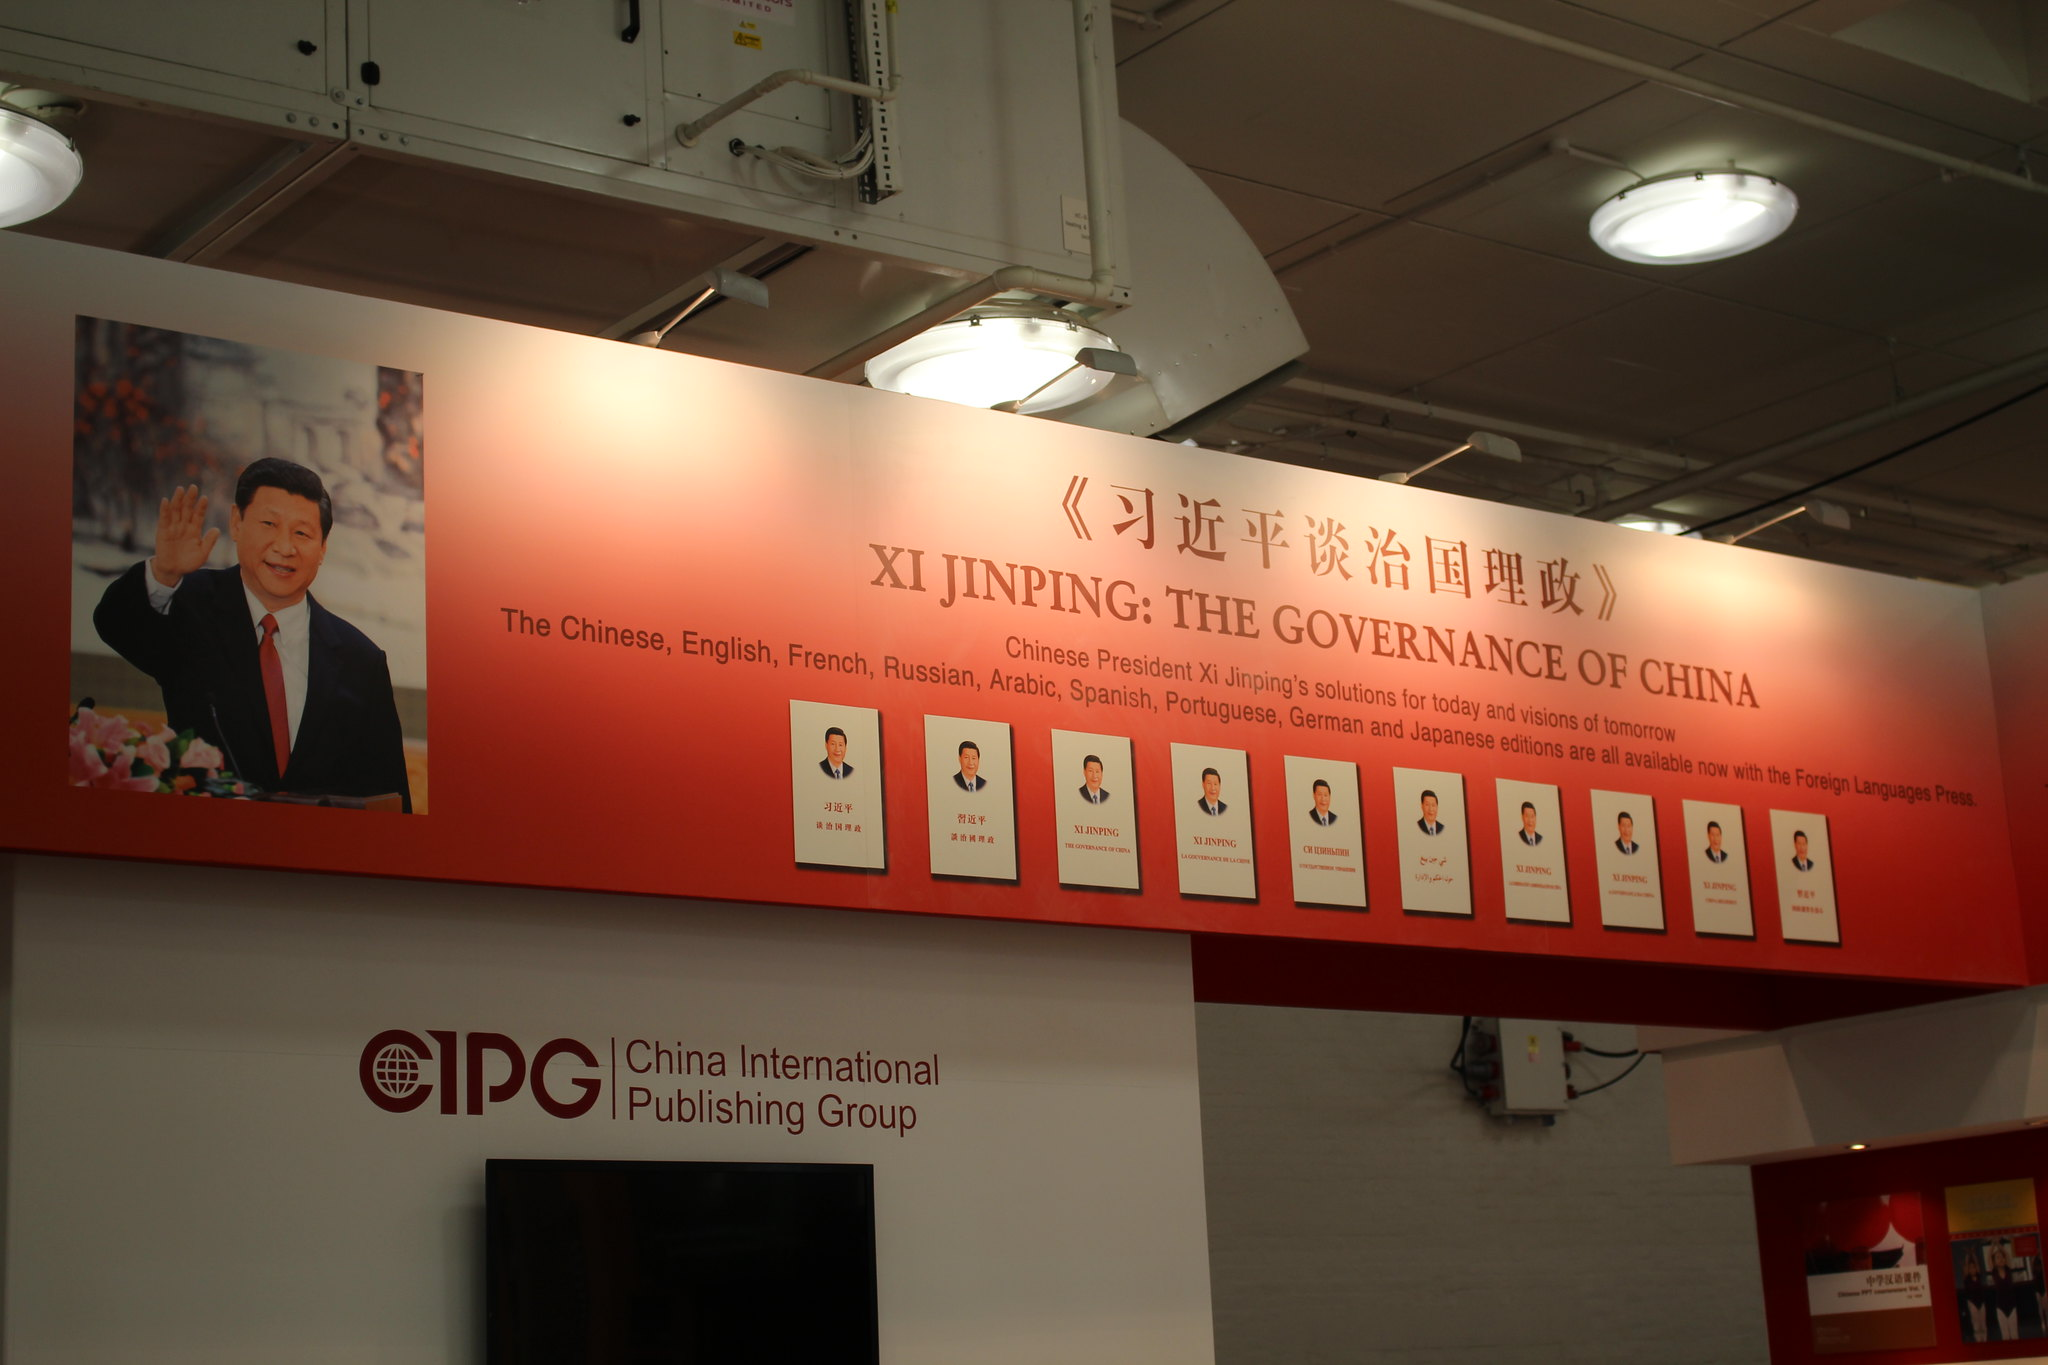 China International Publishing Group - London Book Fair 2015